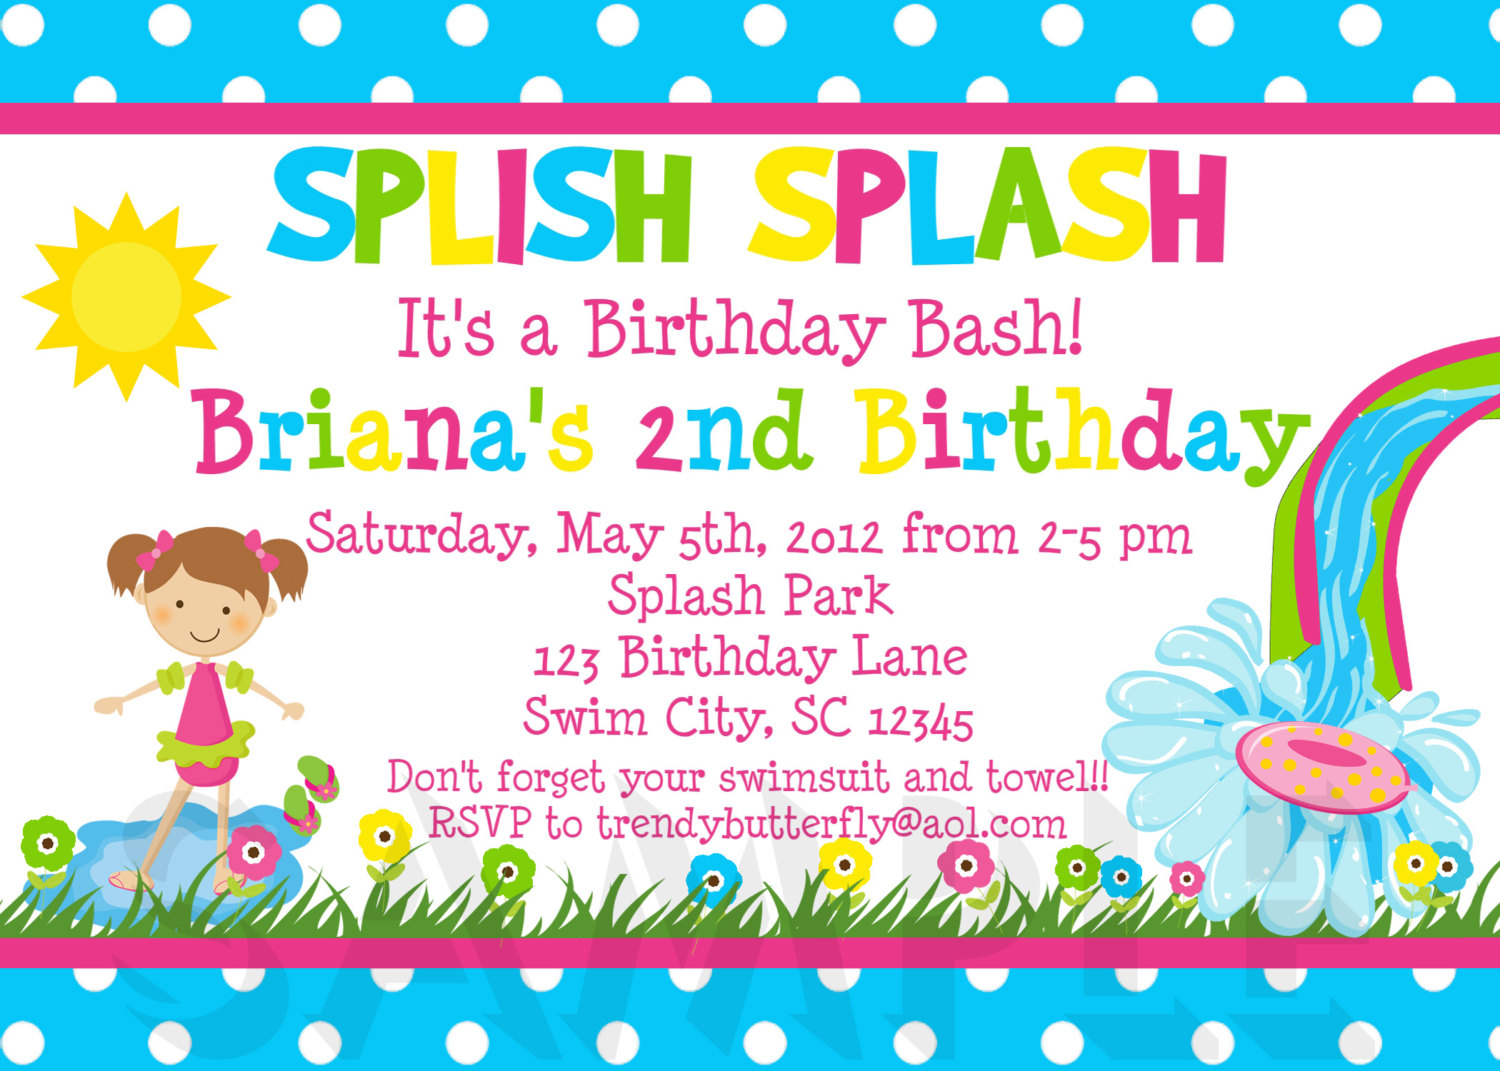 kids birthday party invitations with photo ; kids-wording-birthday-party-invitation-card-magnificent-designing-template-white-background